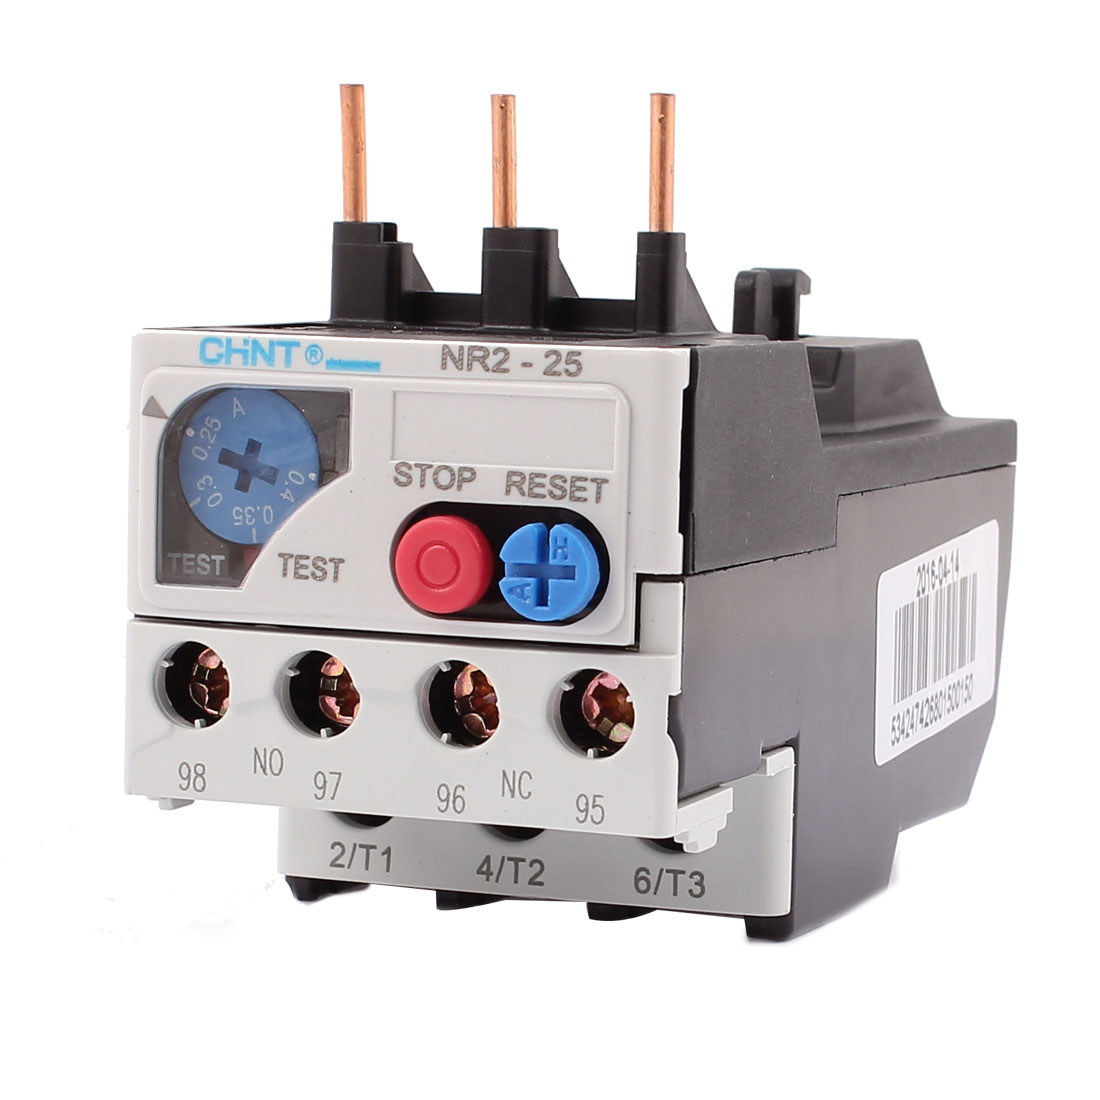 NR2-25 0.25-0.4A 3 Pole 1 NO 1 NC Motor Protector Electric Thermal Overload Relay